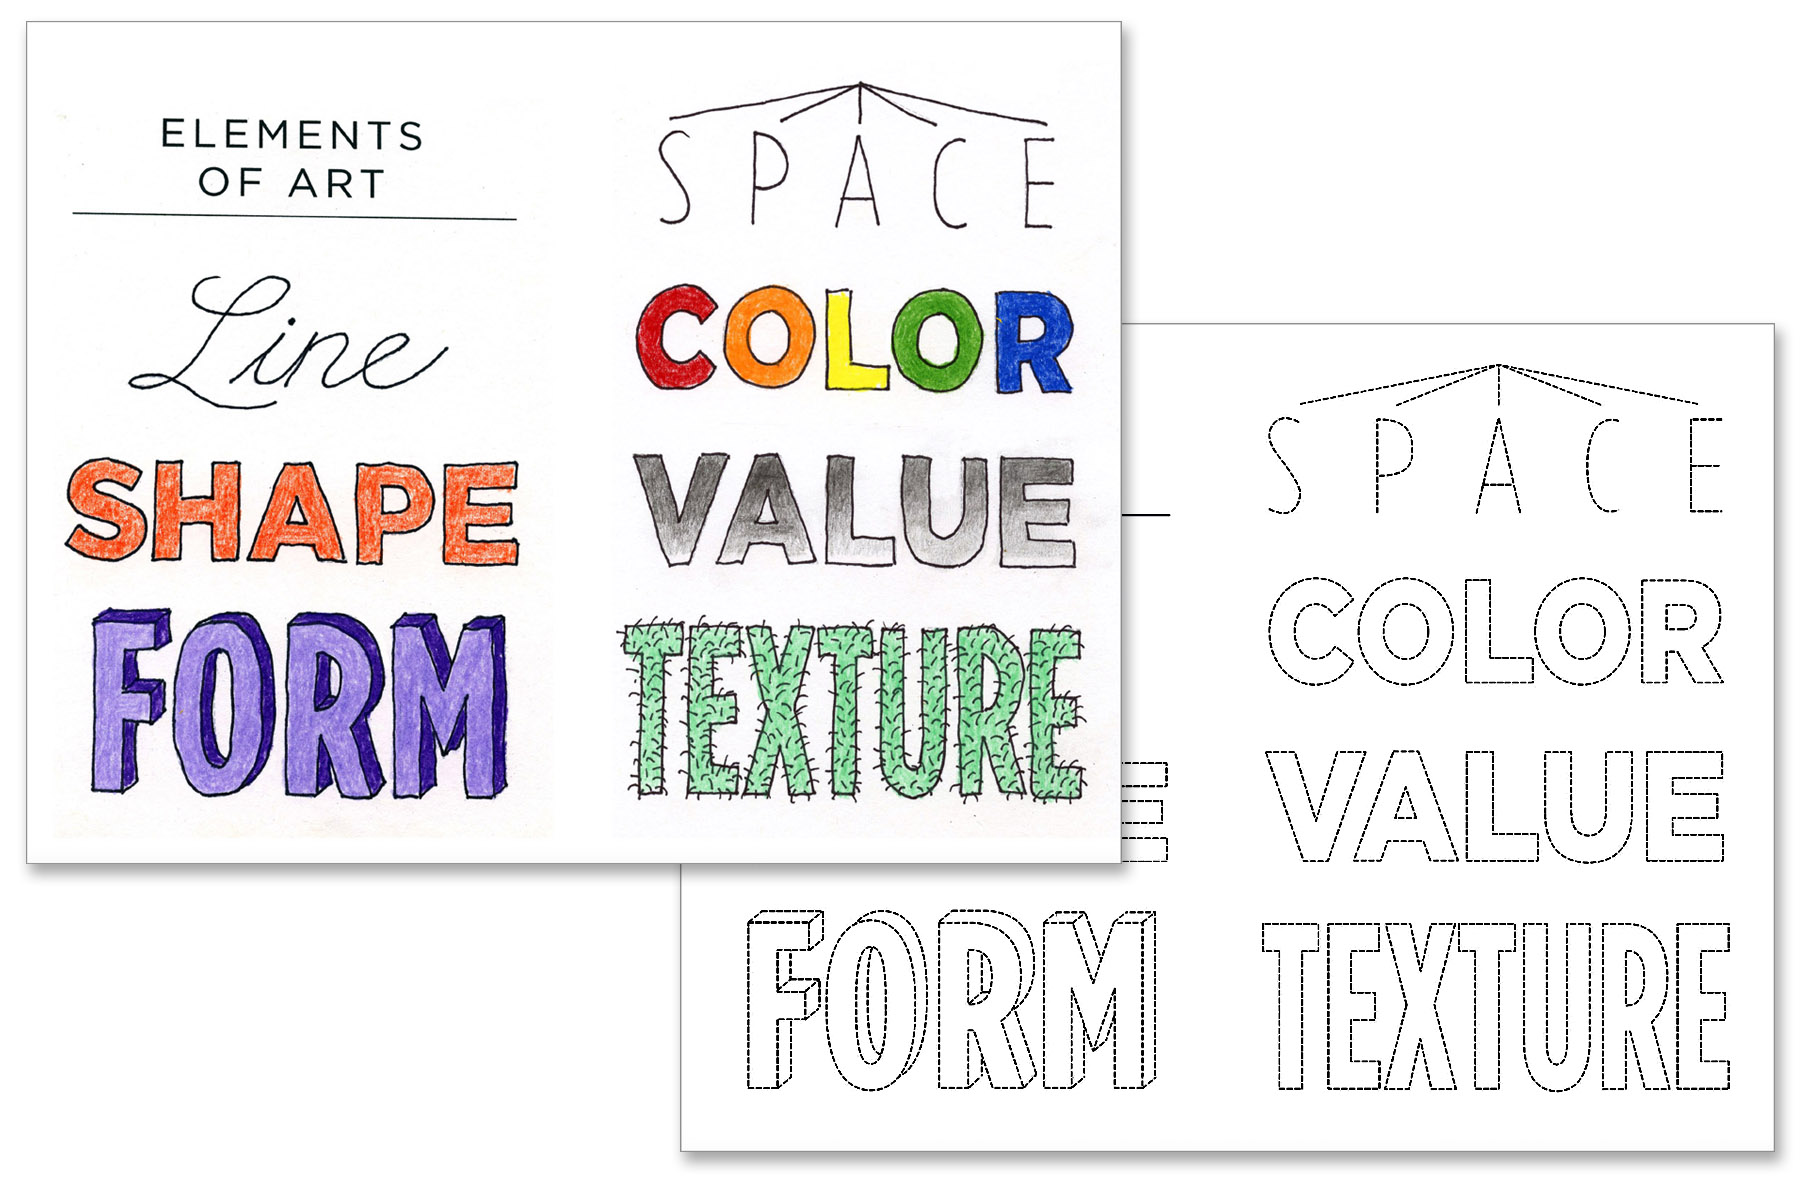 Elements Of Art Colour : Elements of art coloring page projects for kids